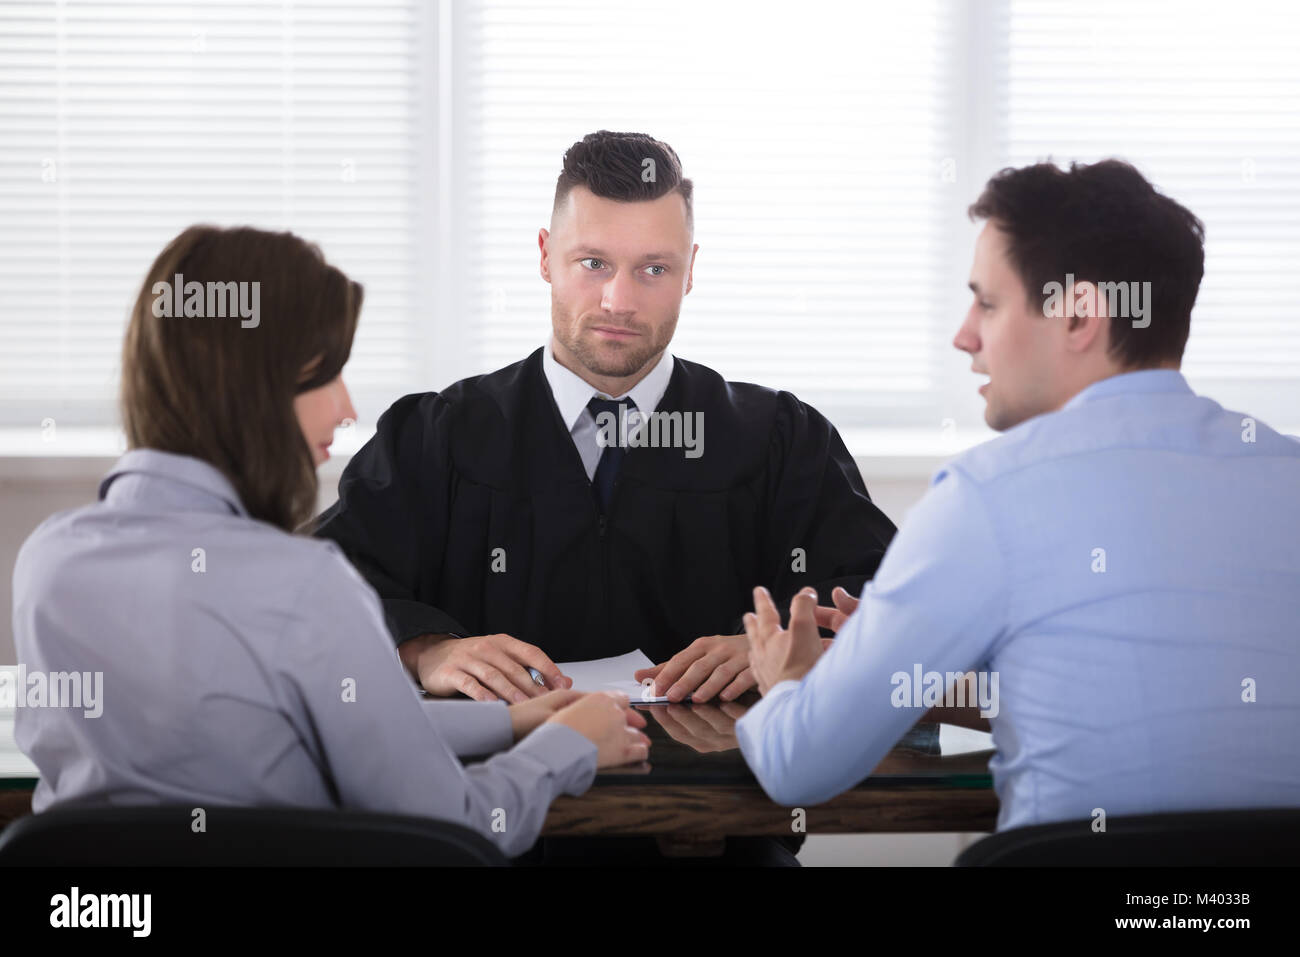 Young Couple Arguing With Each Other In Front Of Judge At Courtroom - Stock Image